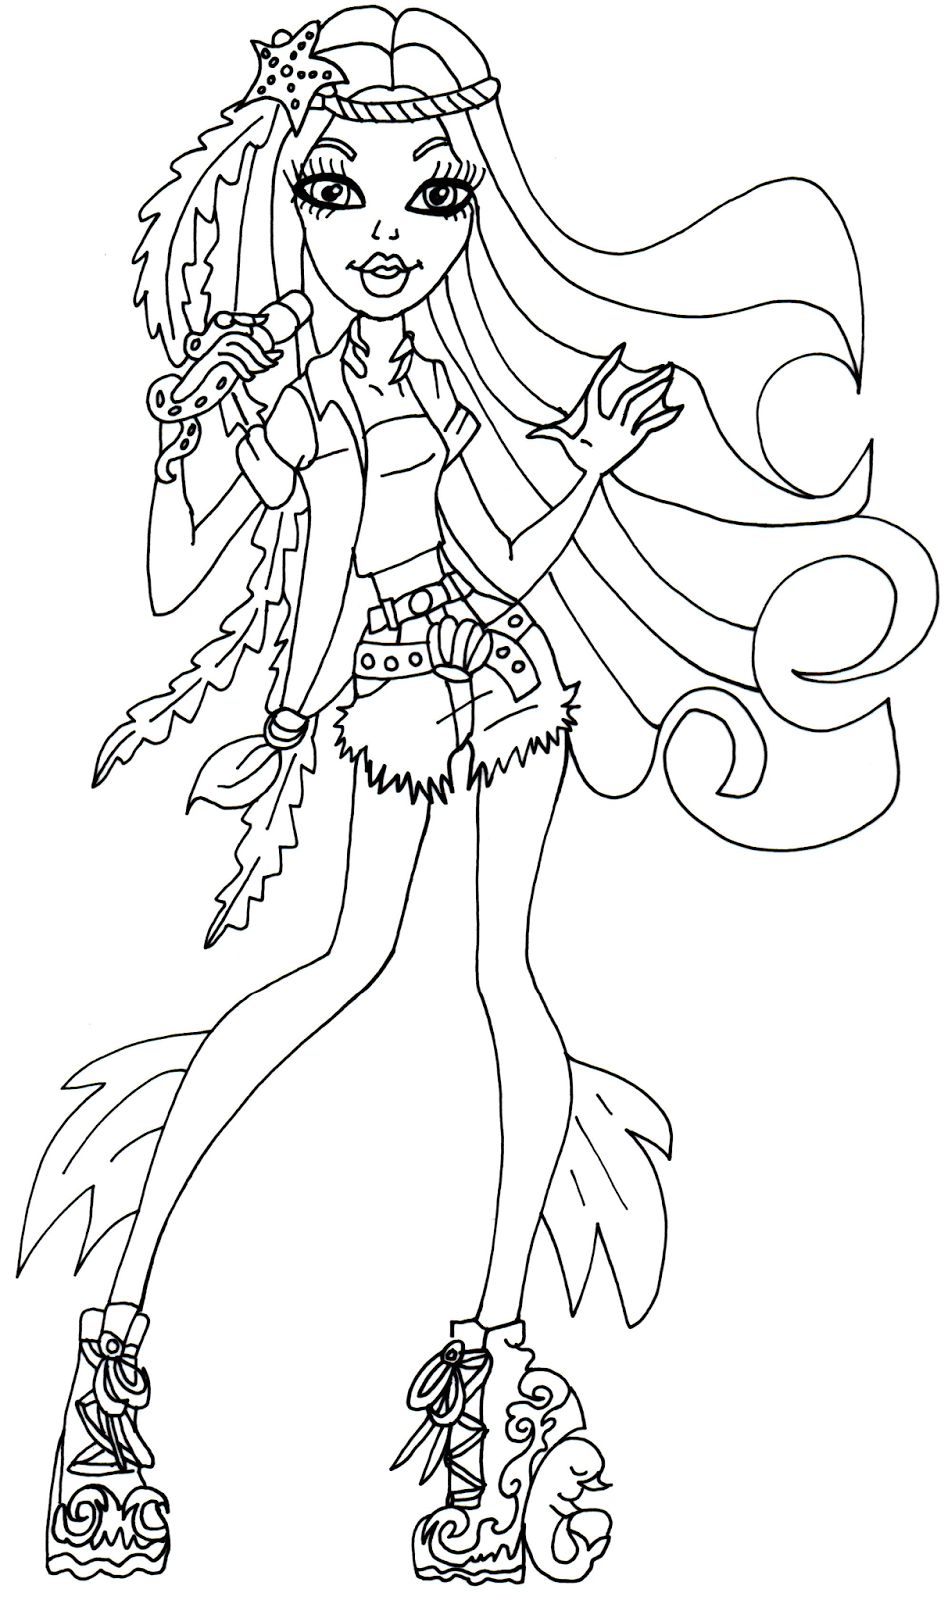 Coloring Pages Monster High Coloring Pages 13 Wishes 1000 images about monster high on pinterest monsters and coloring pages